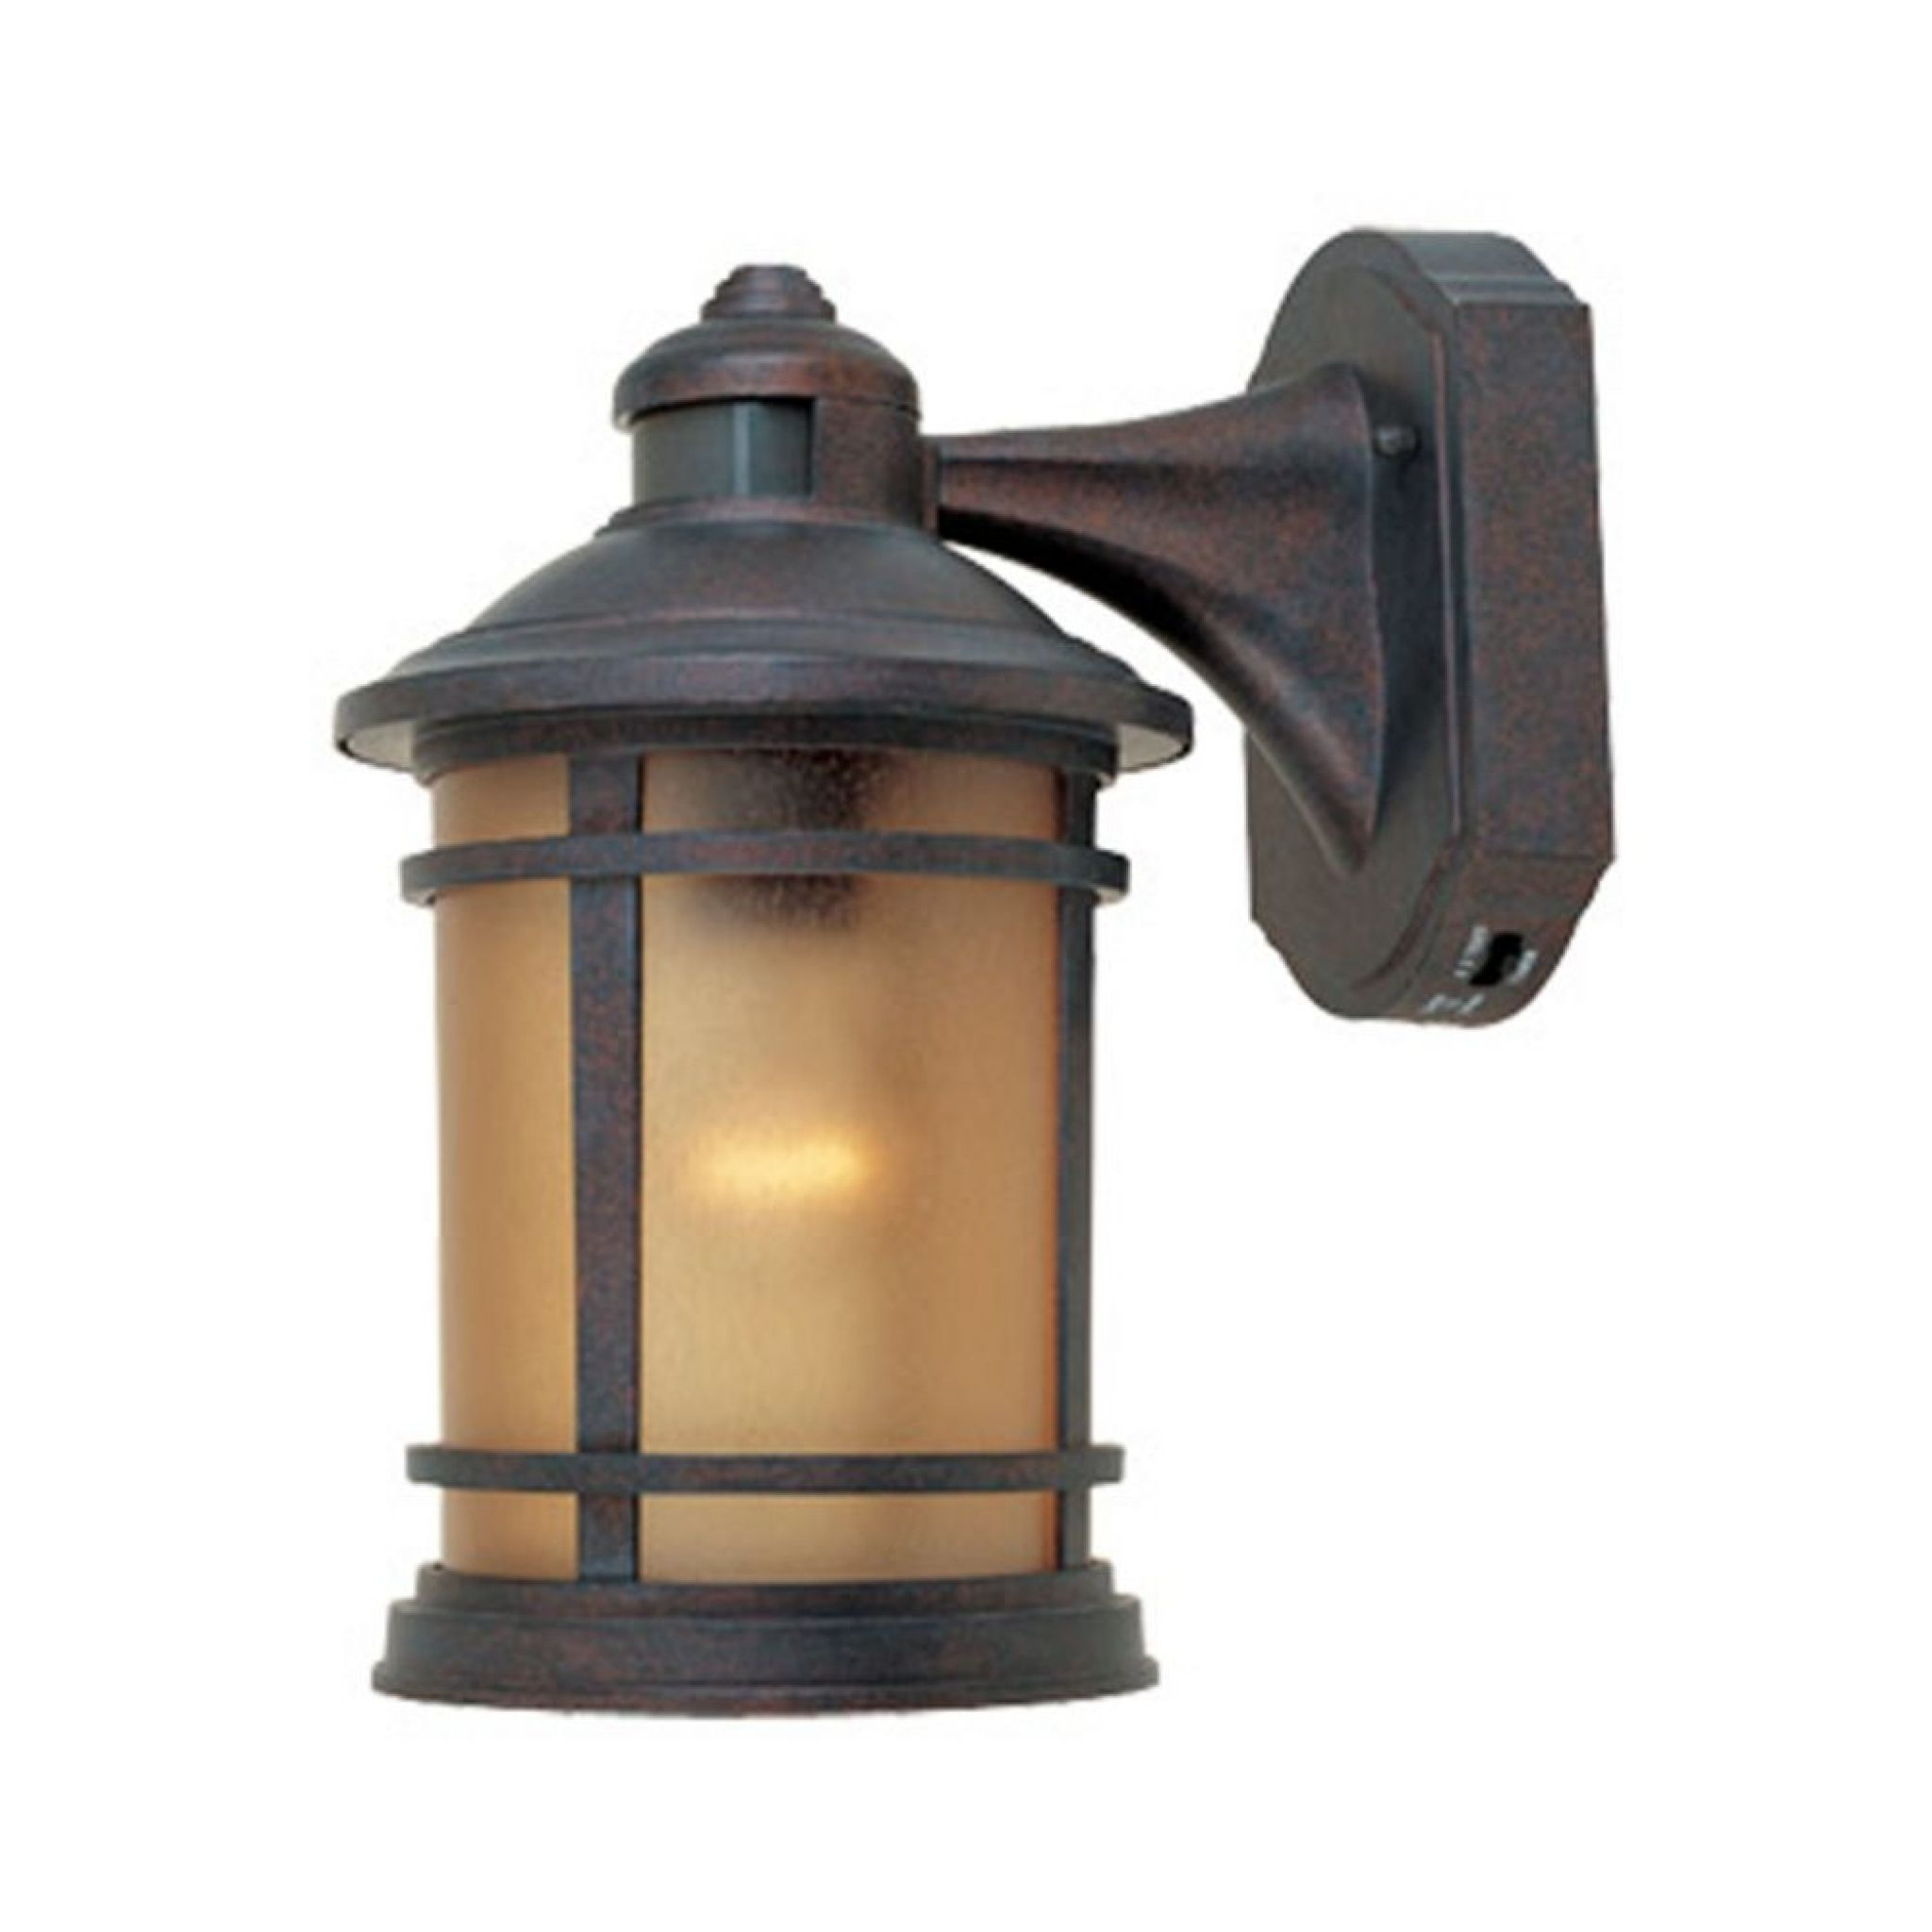 How to add a photocell to an outdoor light interior paint color how to add a photocell to an outdoor light interior paint color ideas check more aloadofball Gallery